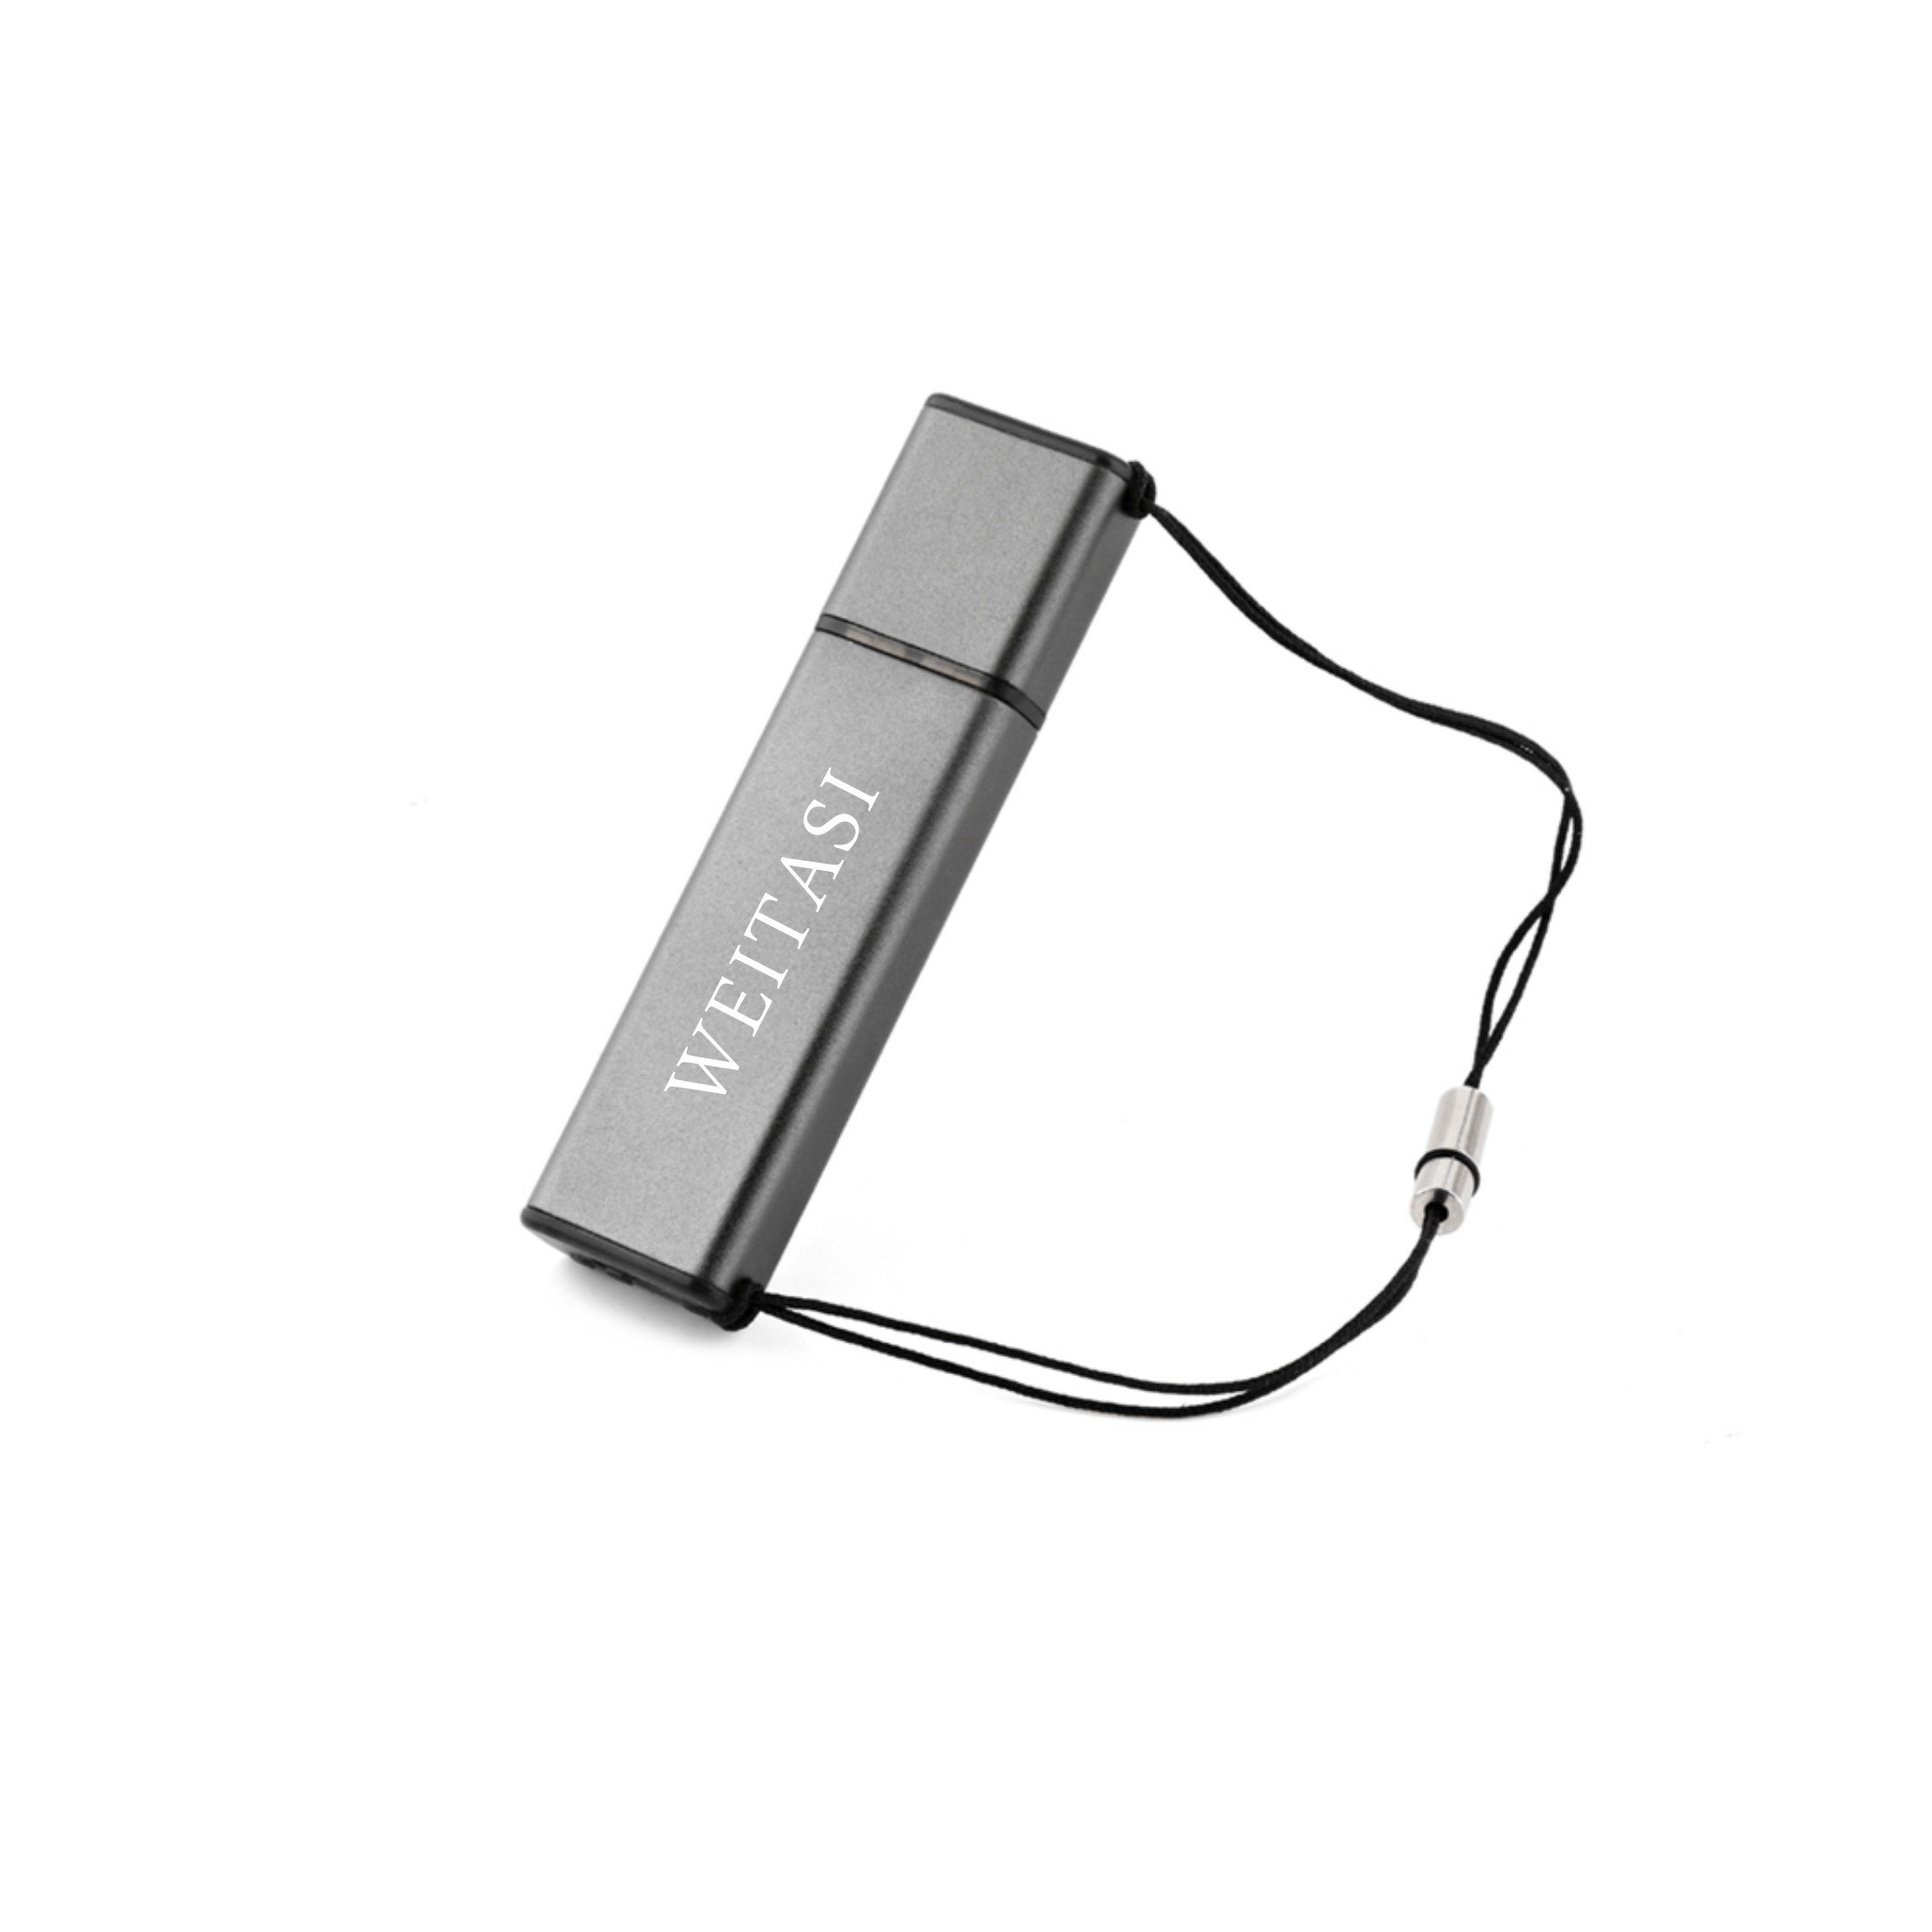 WEITASI USB 3.0 Flash Drive 32GB High Speed Memory Stick With 200M/s Reading and Writing For PC